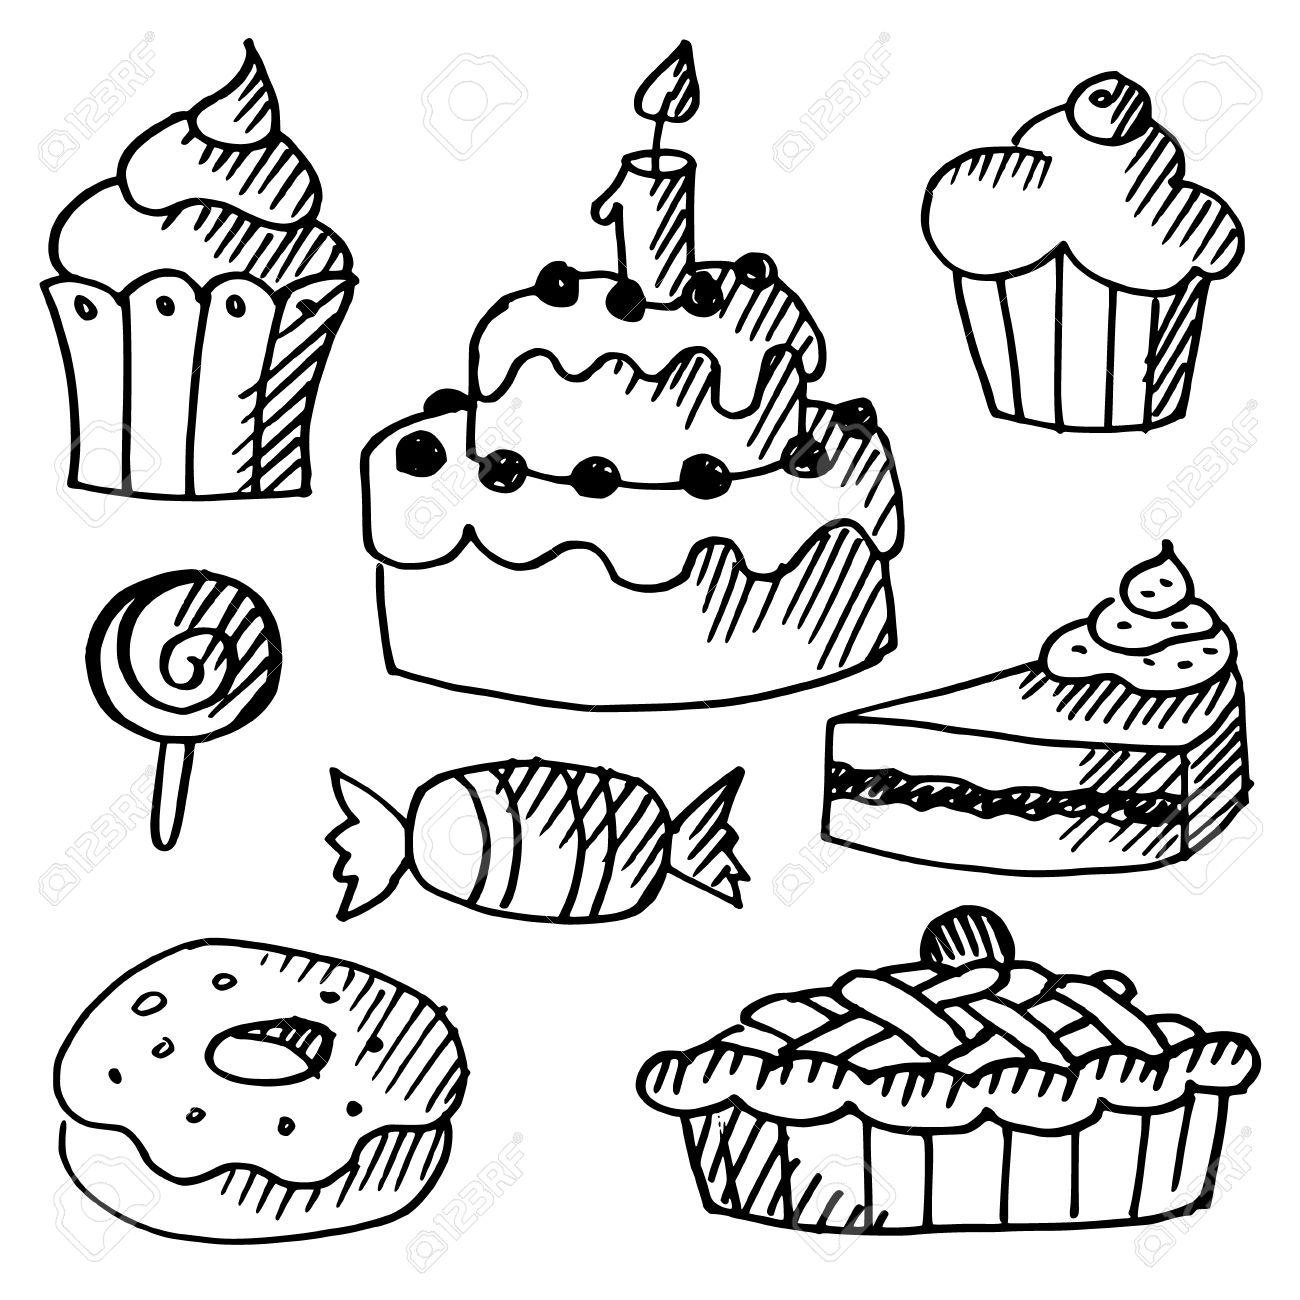 1300x1300 Set Of Various Sweets, Cakes And Cupcakes, Black Isolated Doodle